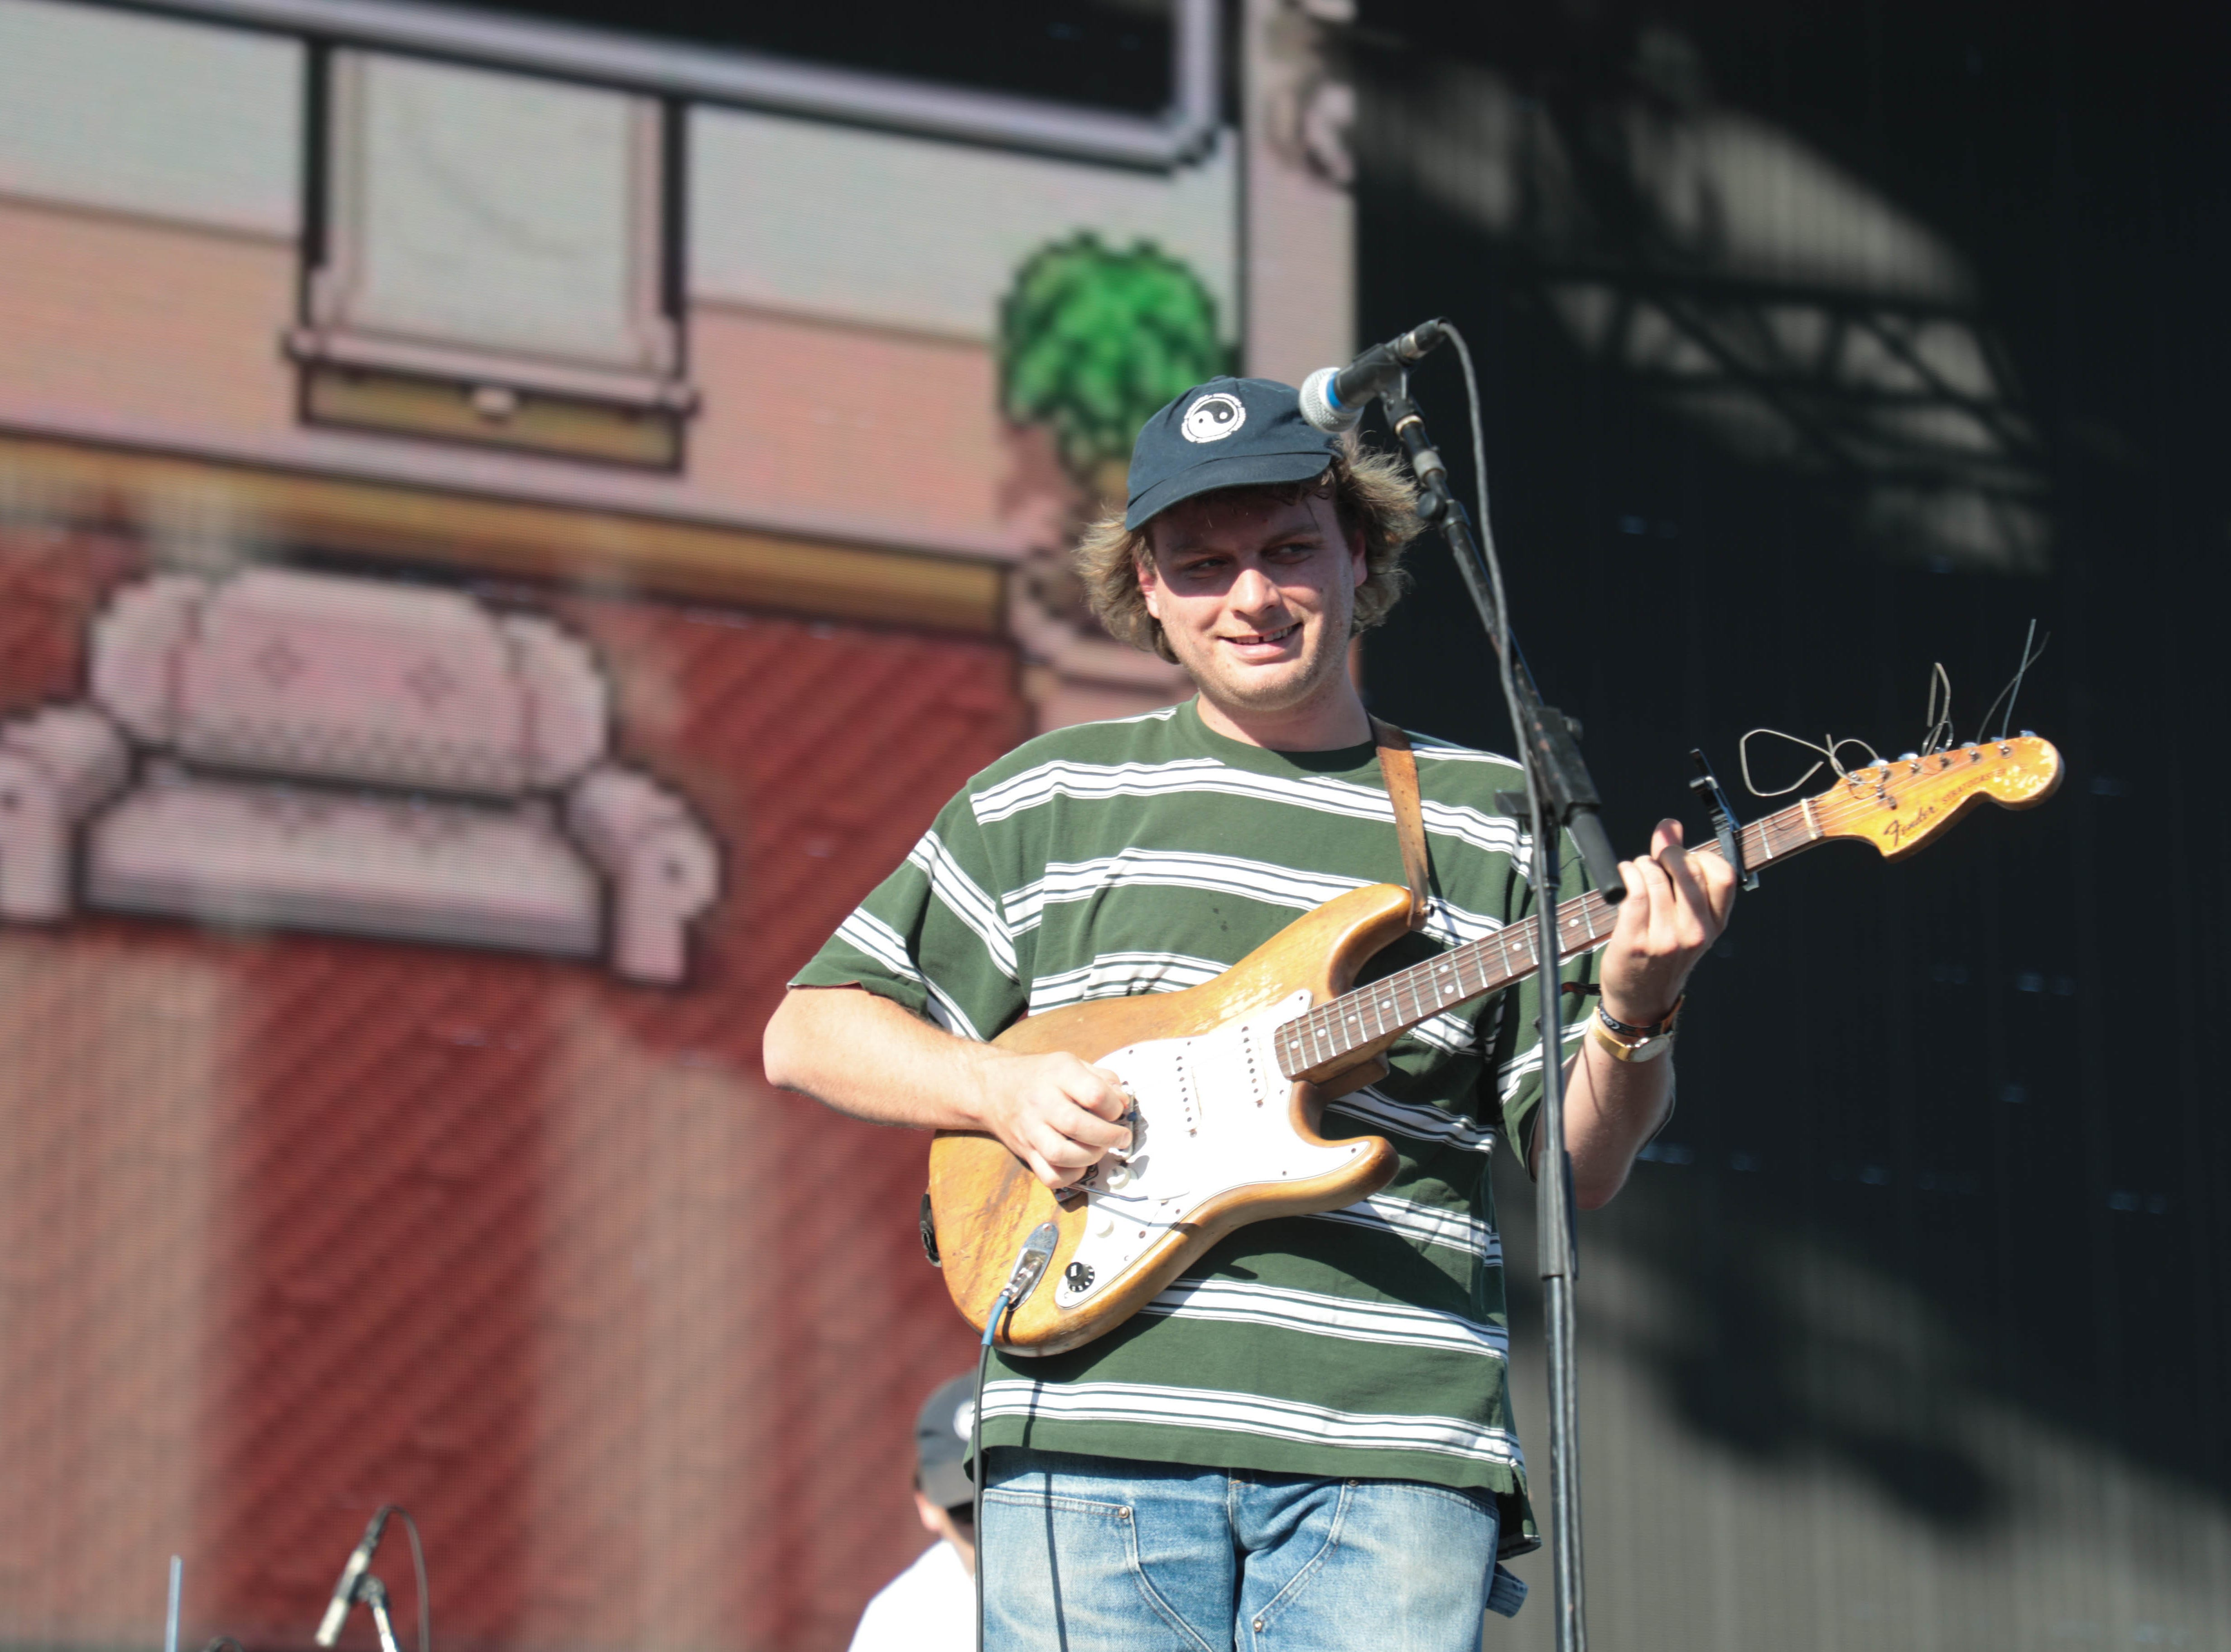 Mac Demarco performs at Coachella Valley Music and Arts Festival on Saturday, April 13, 2019.